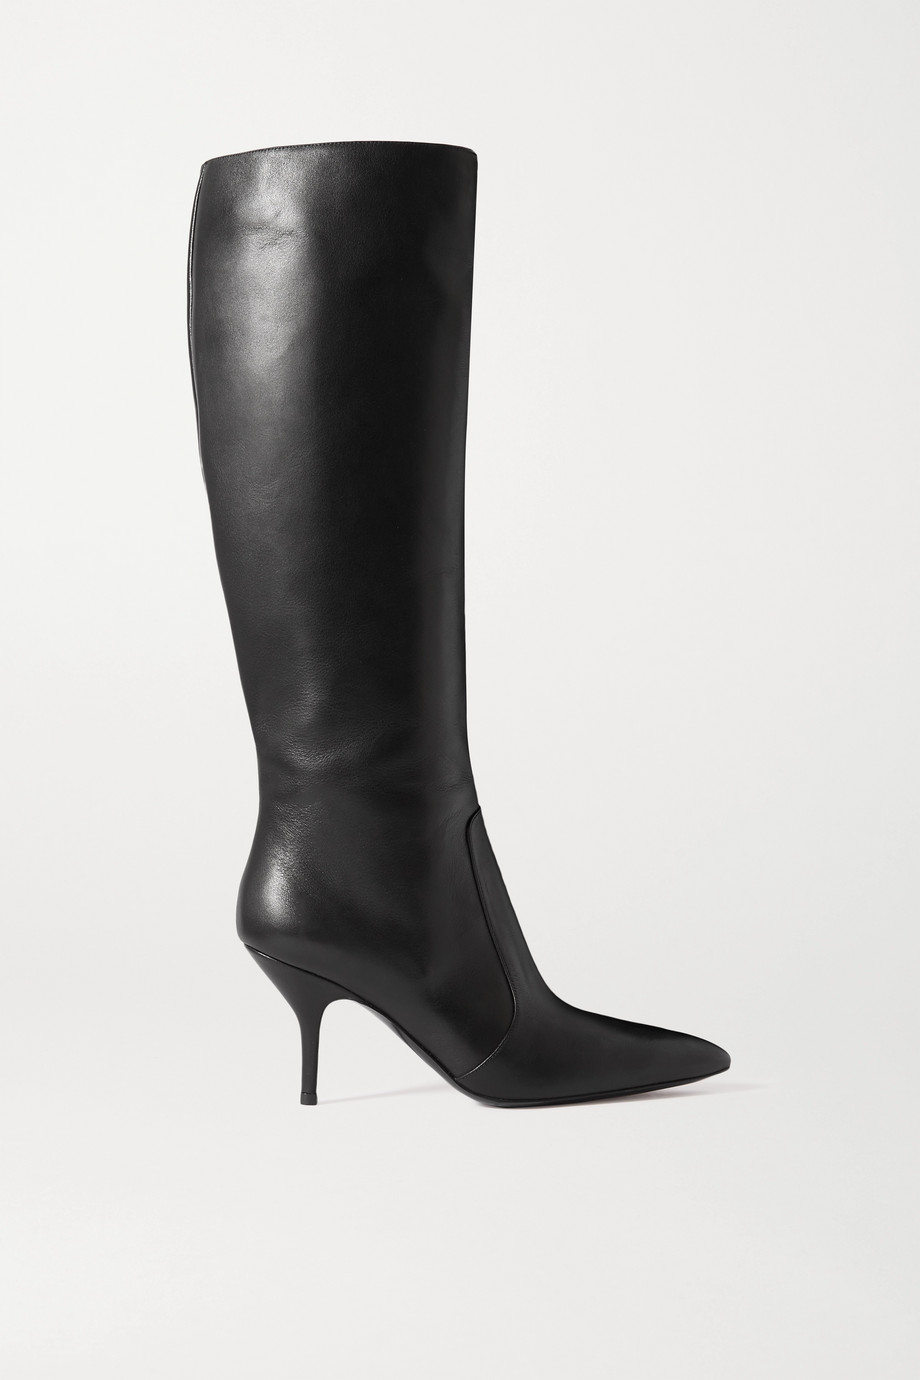 Magda Butrym Egypt leather knee boots